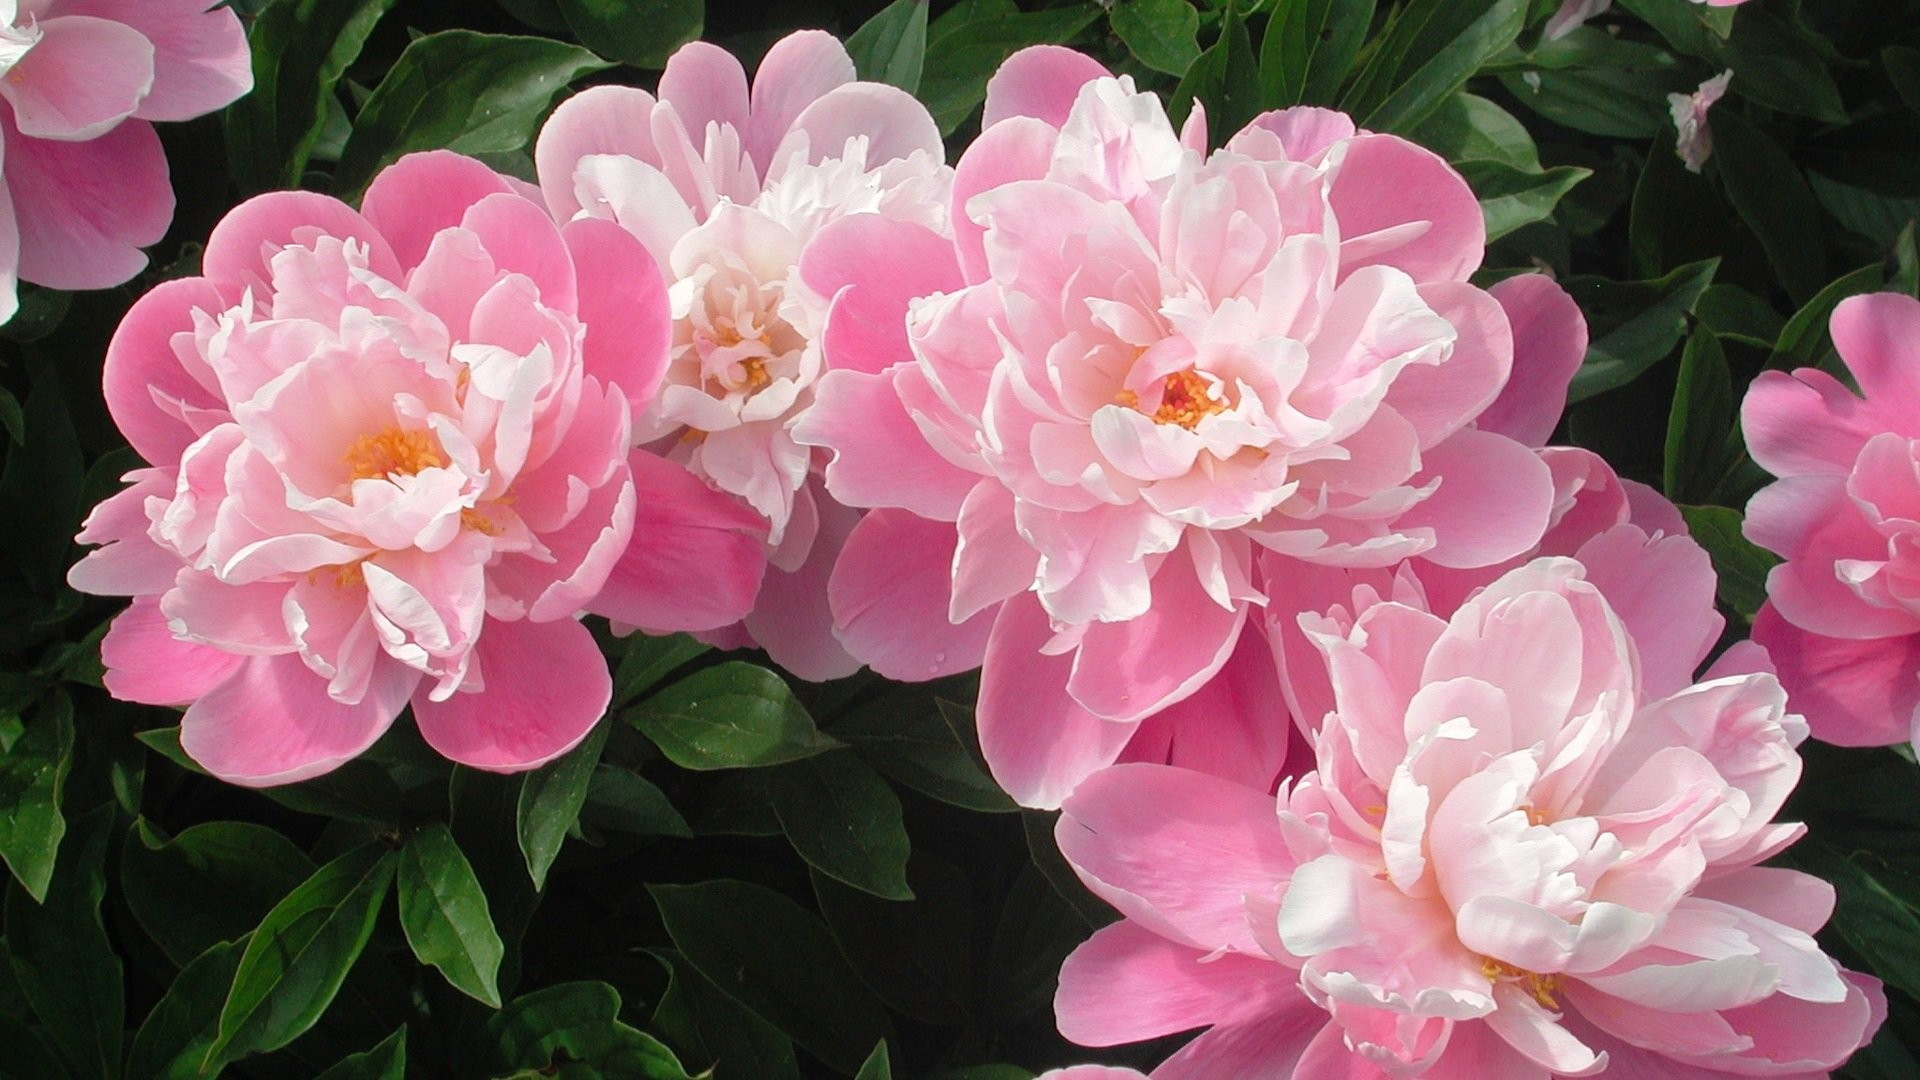 Res: 1920x1080, Download Peony Image Free.